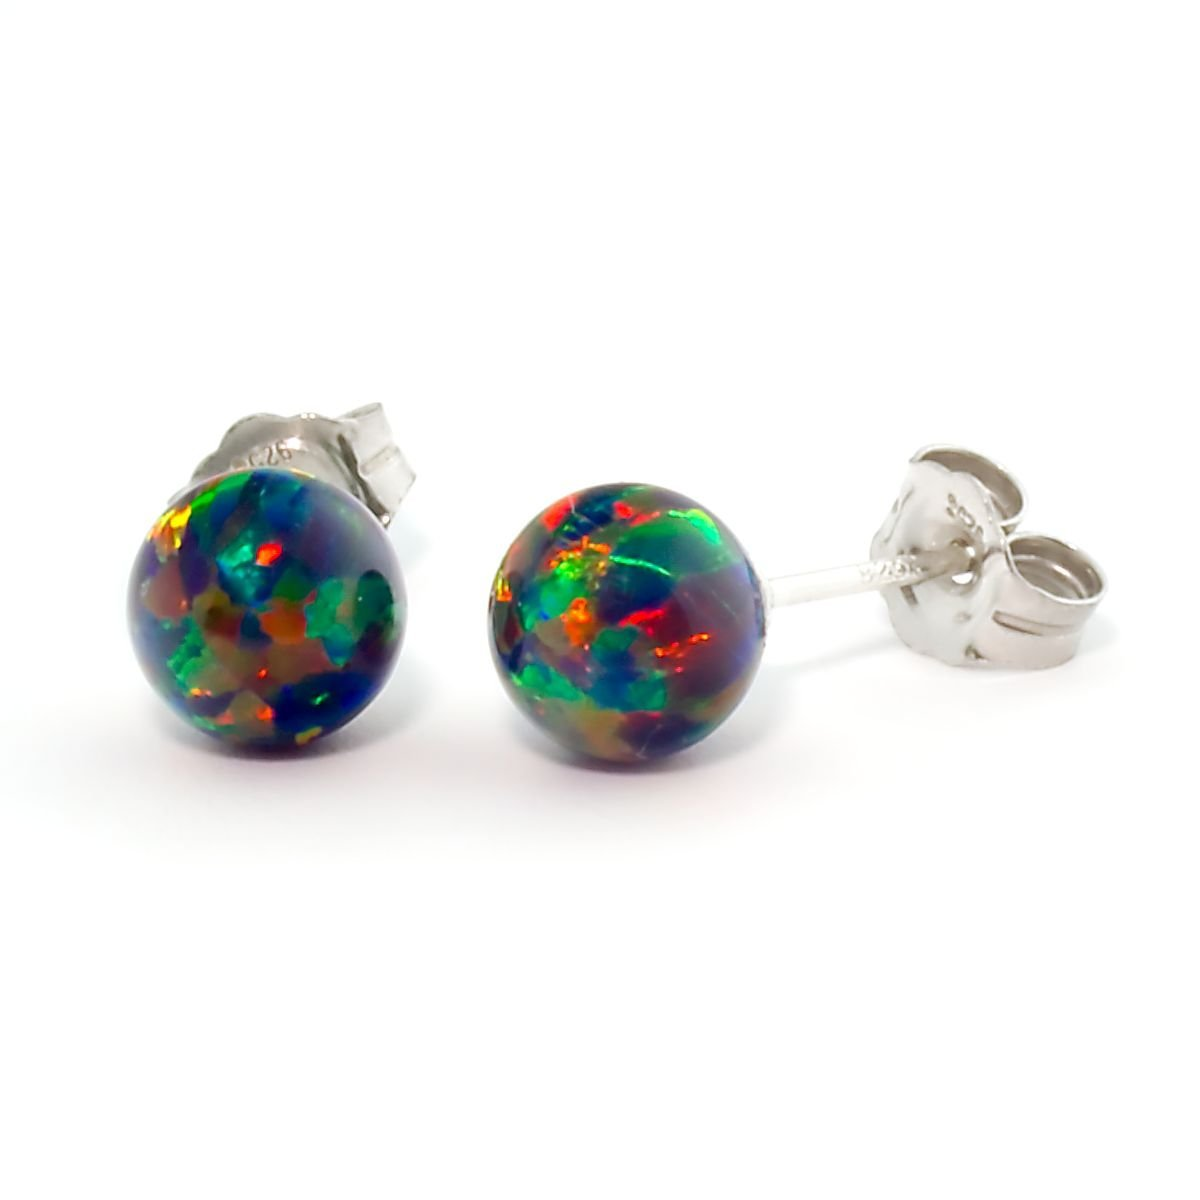 Trustmark 925 Sterling Silver 6mm Black Created Opal Ball Stud Post Earrings, Aurora